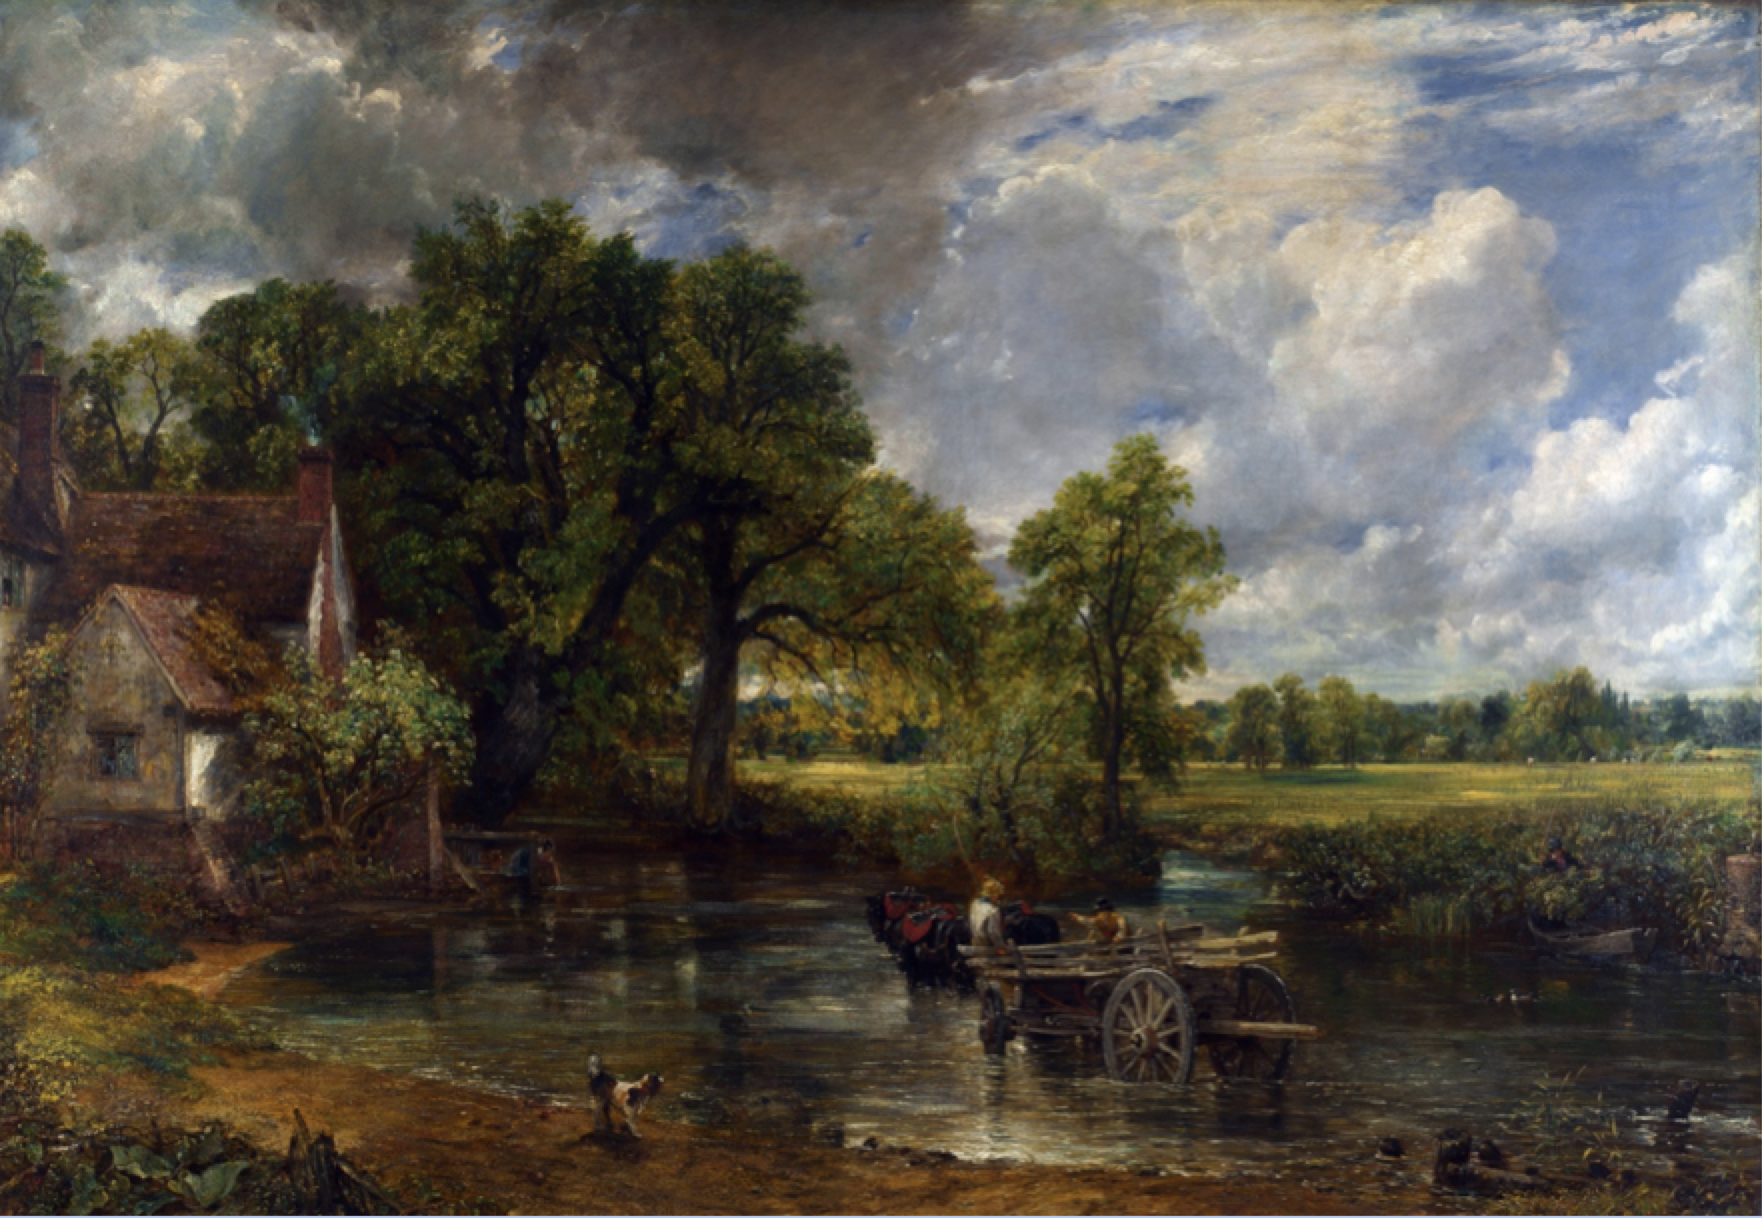 Berwick St James Parish The Life & Work of John Constable